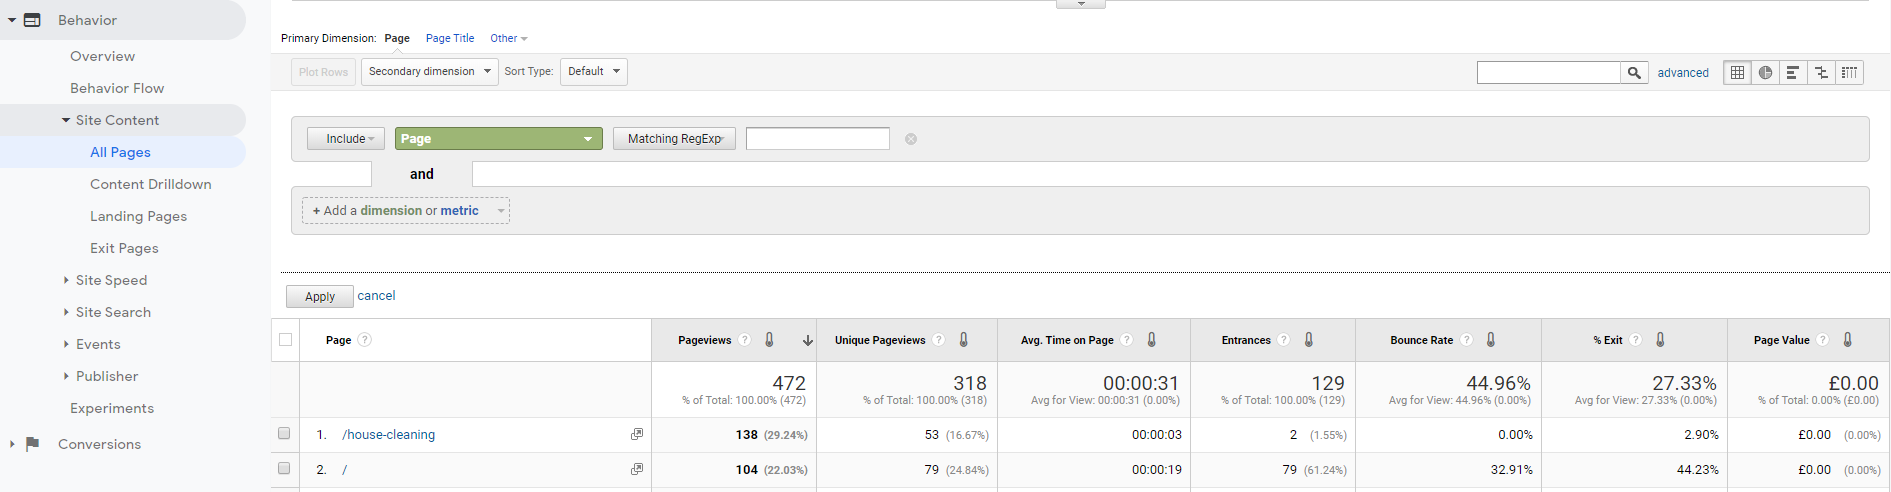 Google Analytics All Pages Report Auditing For PII